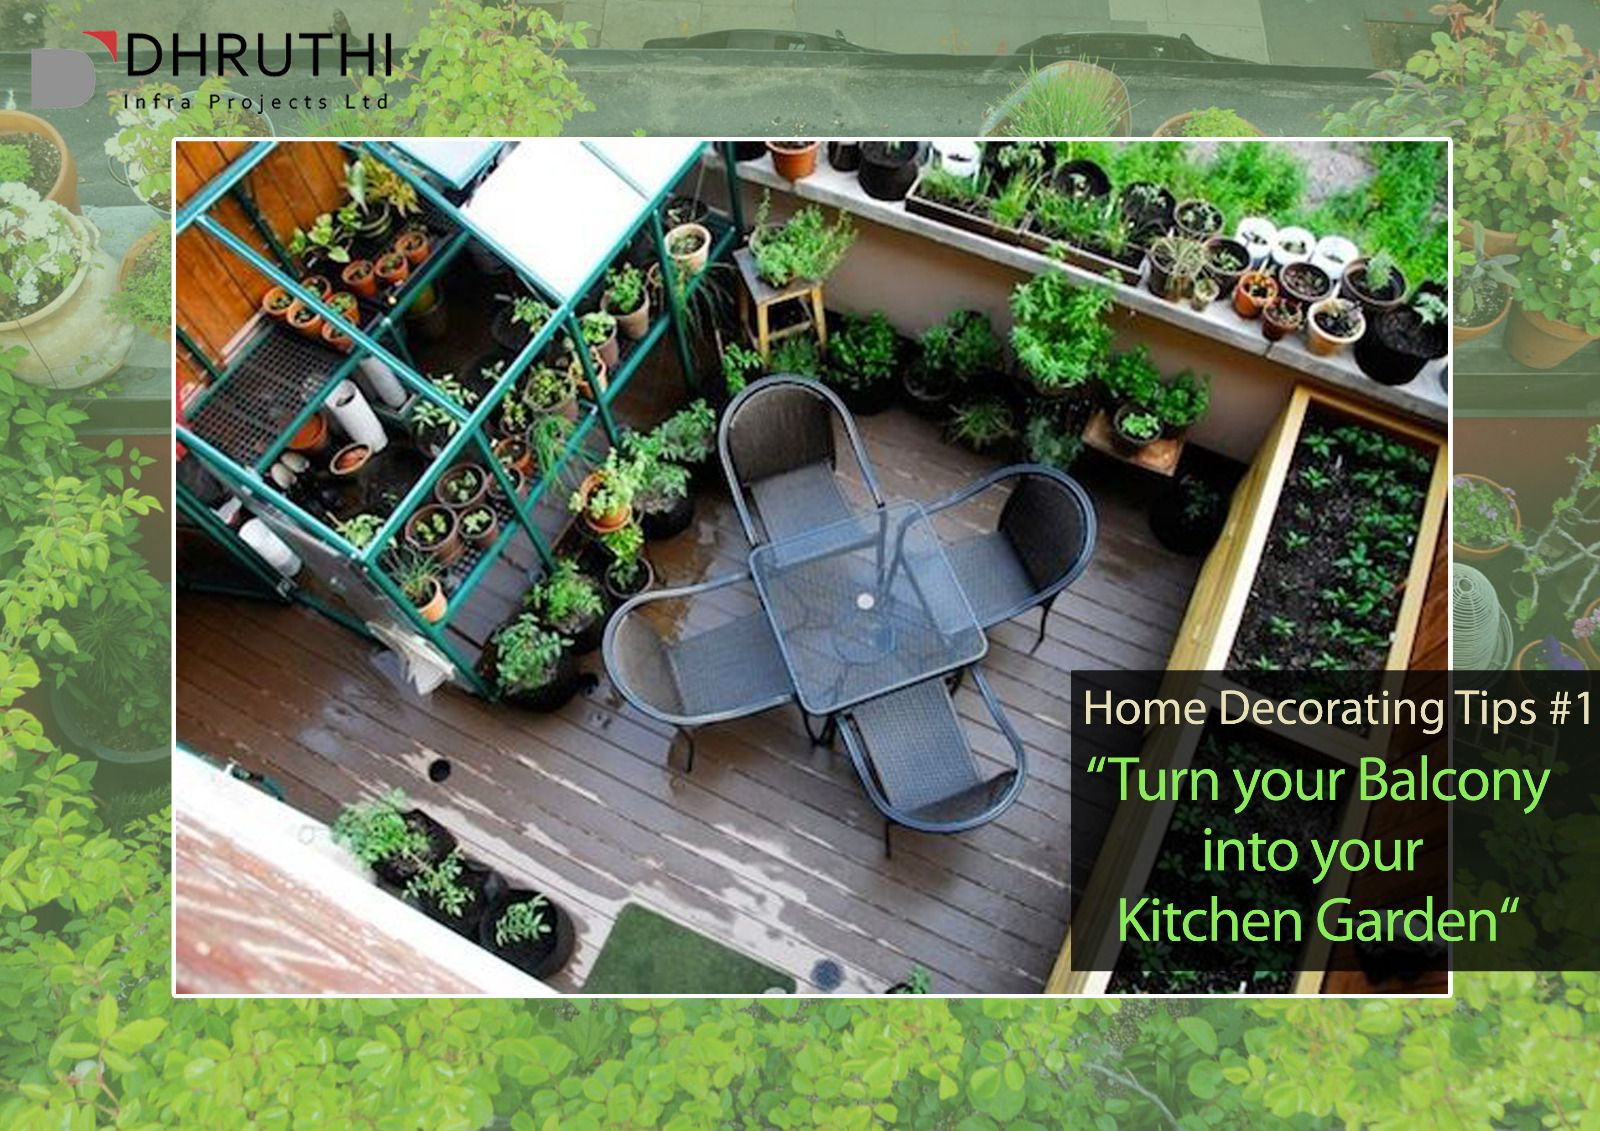 #HomeDecoratingTip #1 - Your Home Your Pride. Style your Home Organically.    Planning to purchase a spacious apartment with balcony? Then make your organic vegetables in your balcony!   Decorating your home with Plants is a brilliant way to reduce pollutants in your home as they are natural air sterilizers.  Book your home at Tranquil Towers goo.gl/2QfeG0 and lead a healthy life by planning a Go Green interior.   #HomeGarden #HomeDecoration #GoGreen